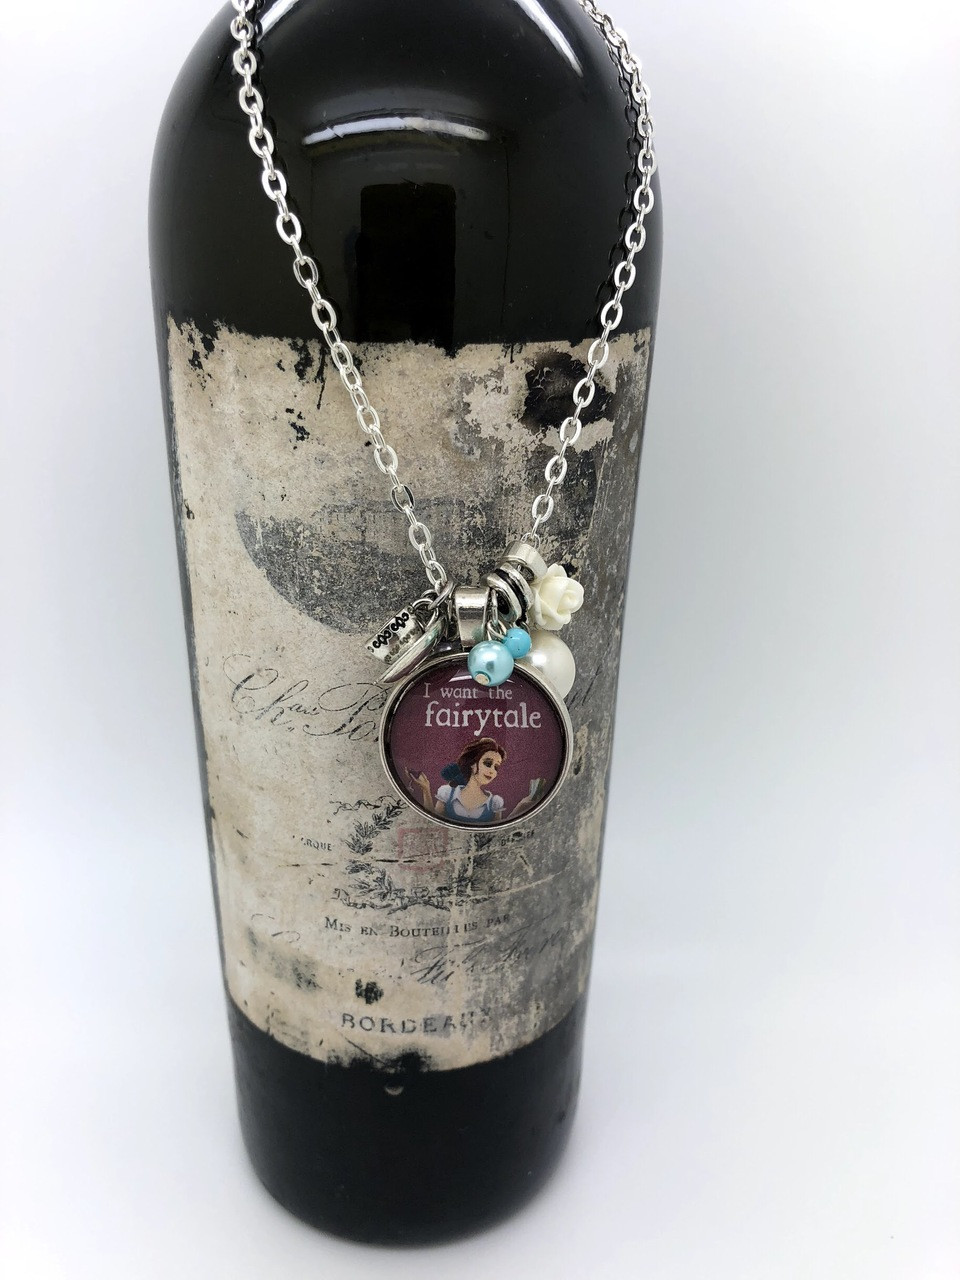 I want the fairytale  Belle Chérie 24 inch round pendant necklace  The tea cup and flower charm finish off this enchanted necklace. Charm is 1 inch. Round.